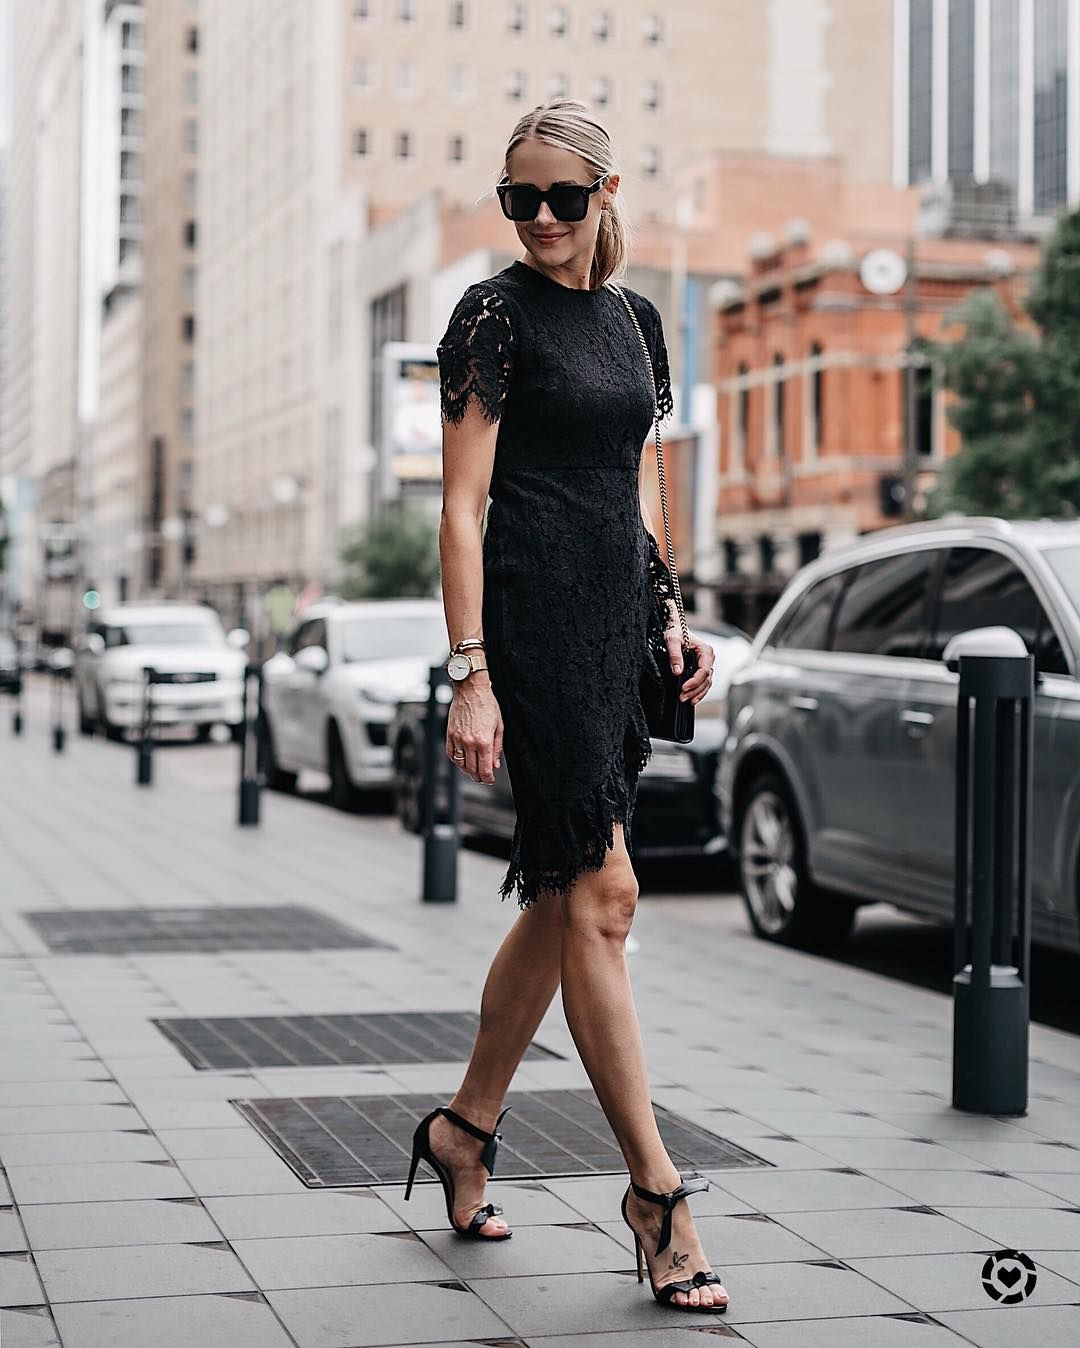 Pin by Fefe98 on {fashion}